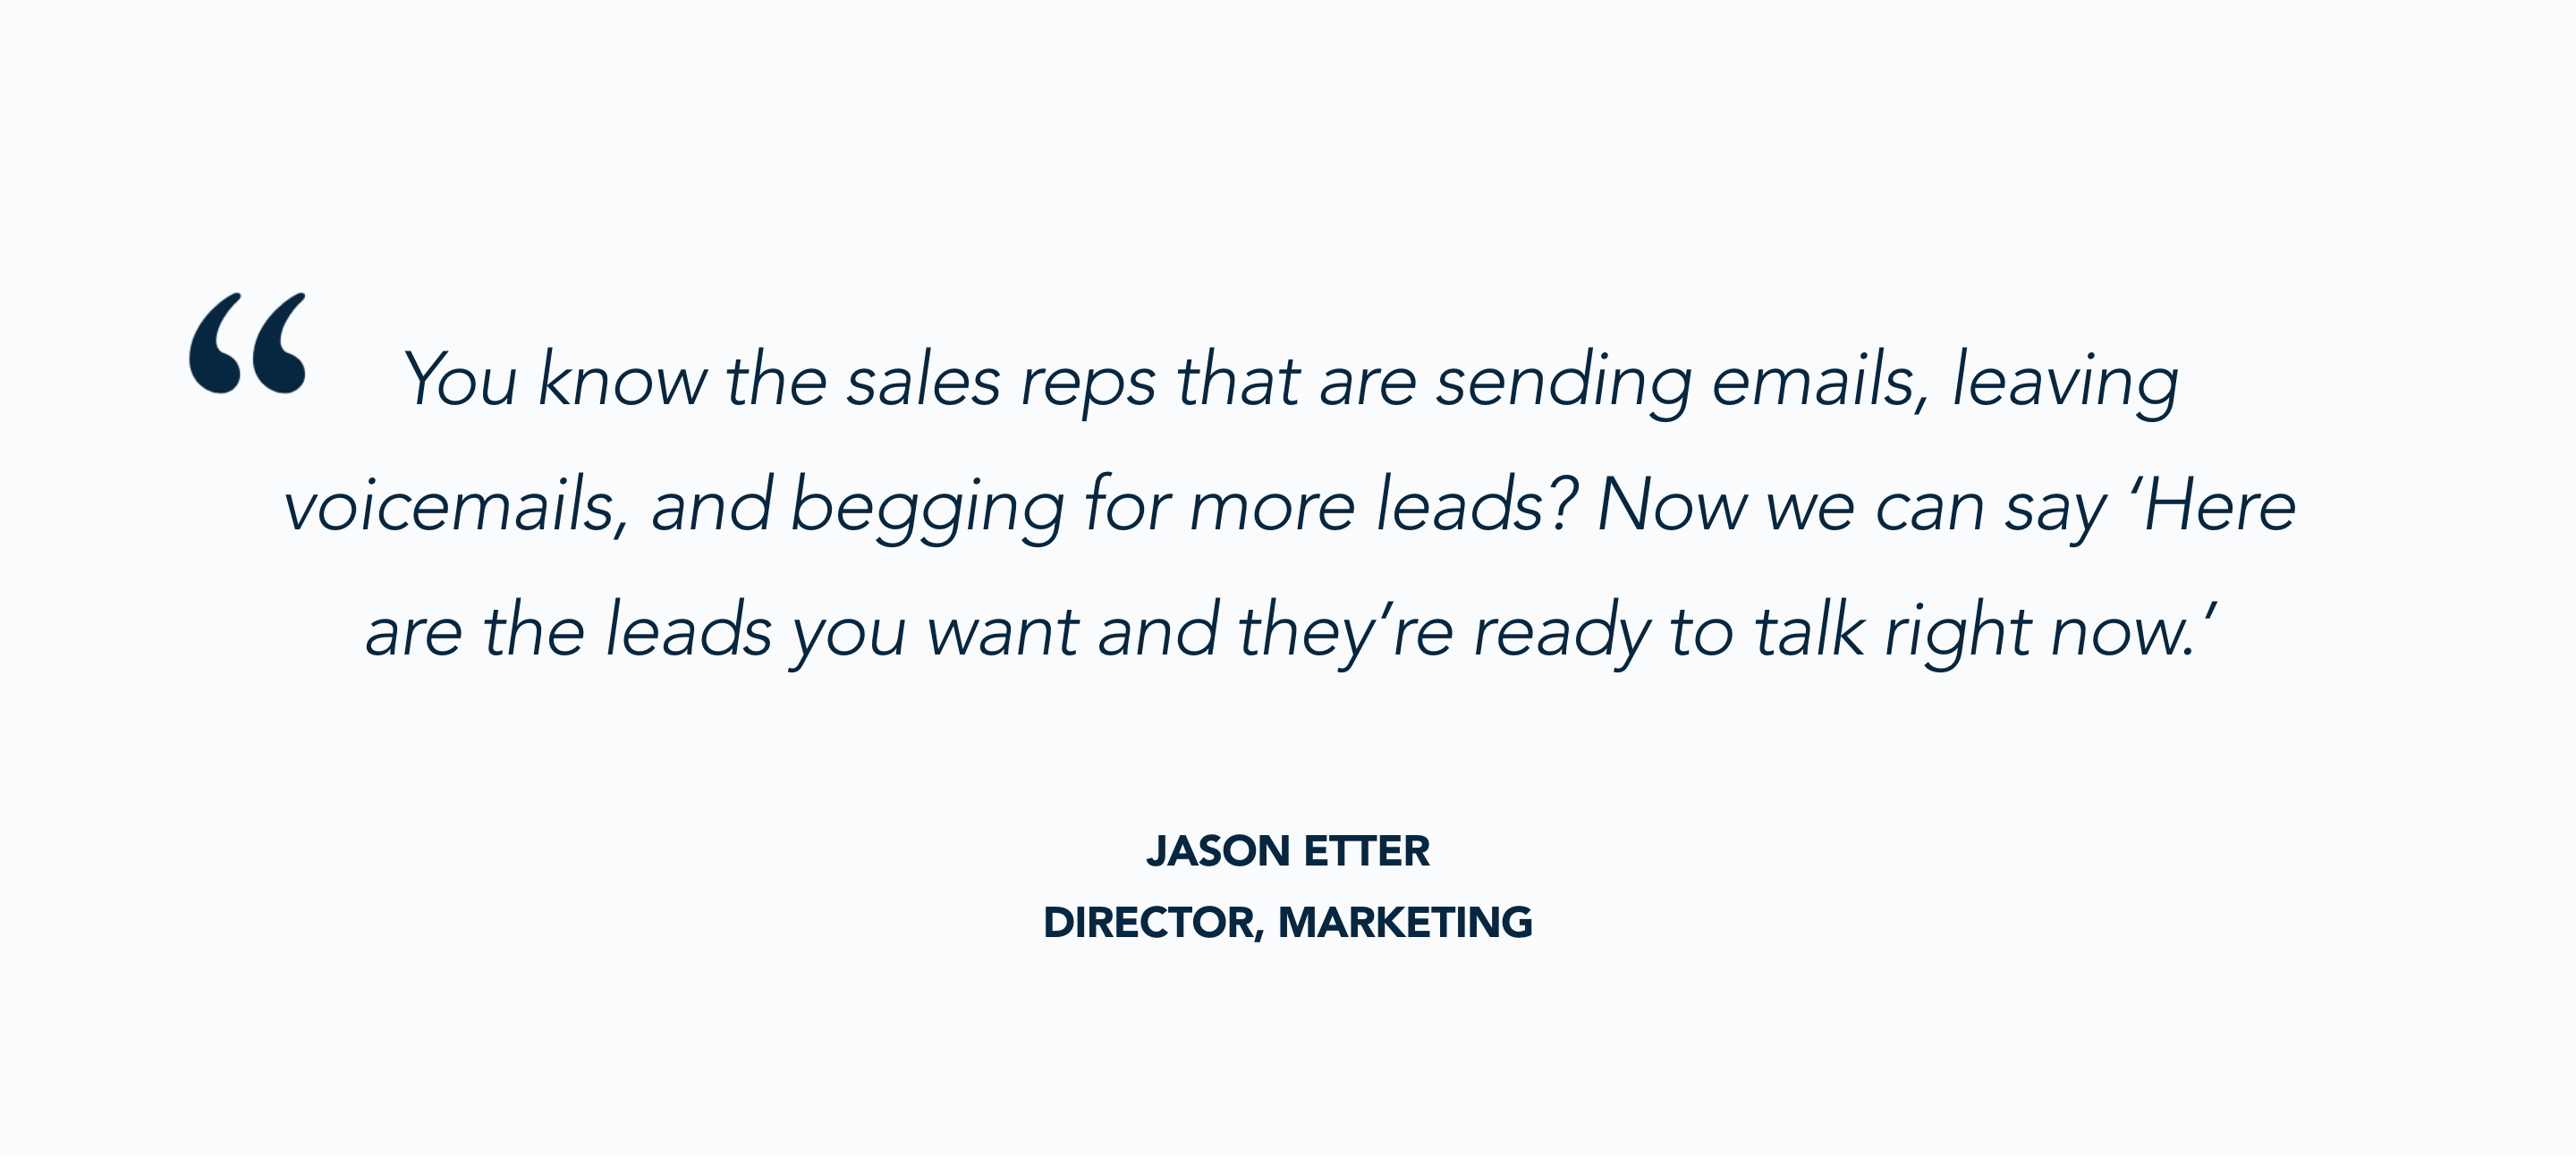 Jason Etter, Staffbase, Talks about the value of handing leads over to sales